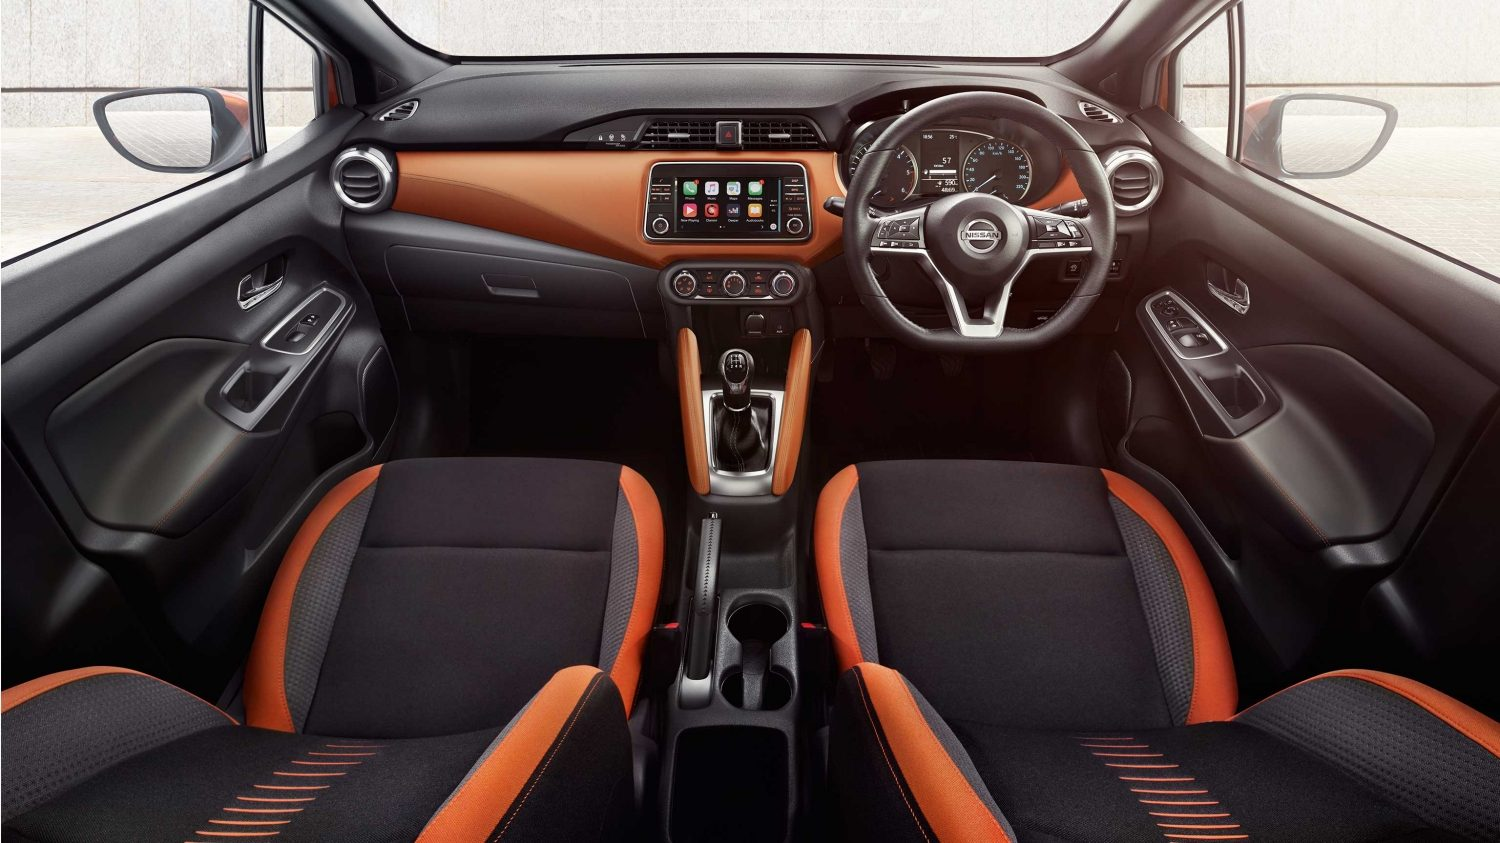 Energy Orange interior - Acenta Plus